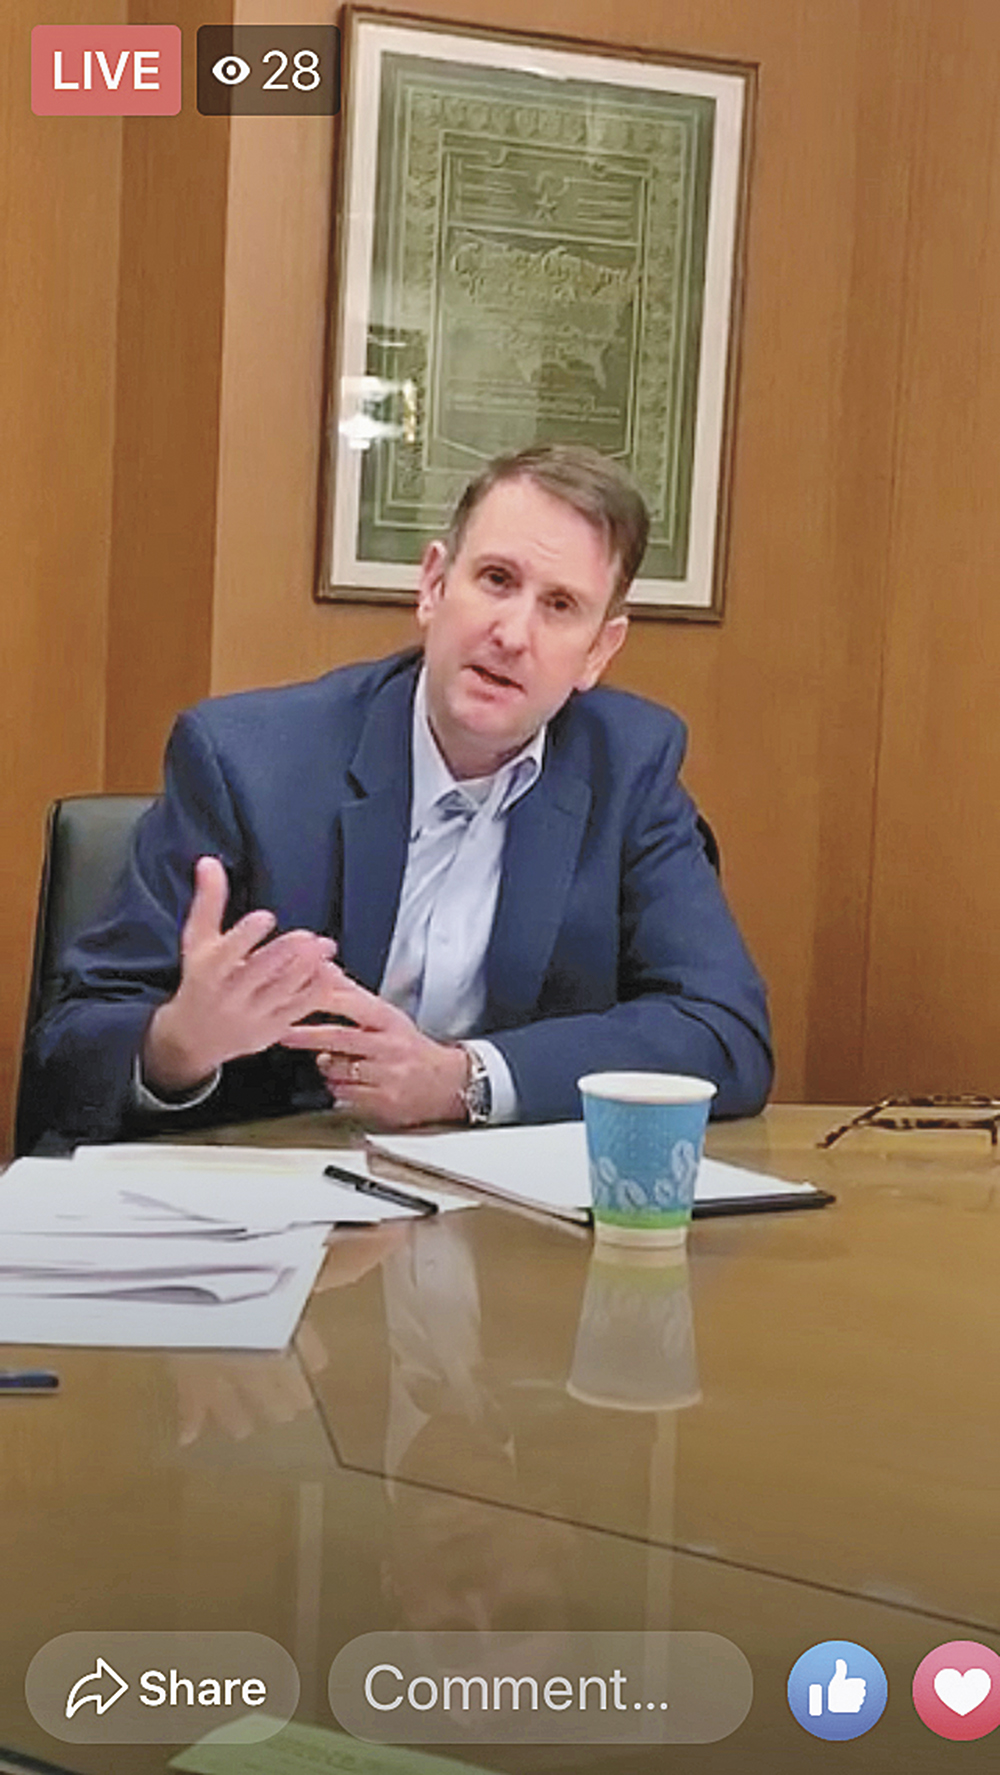 Prichard addresses small business owners in Facebook Live chat